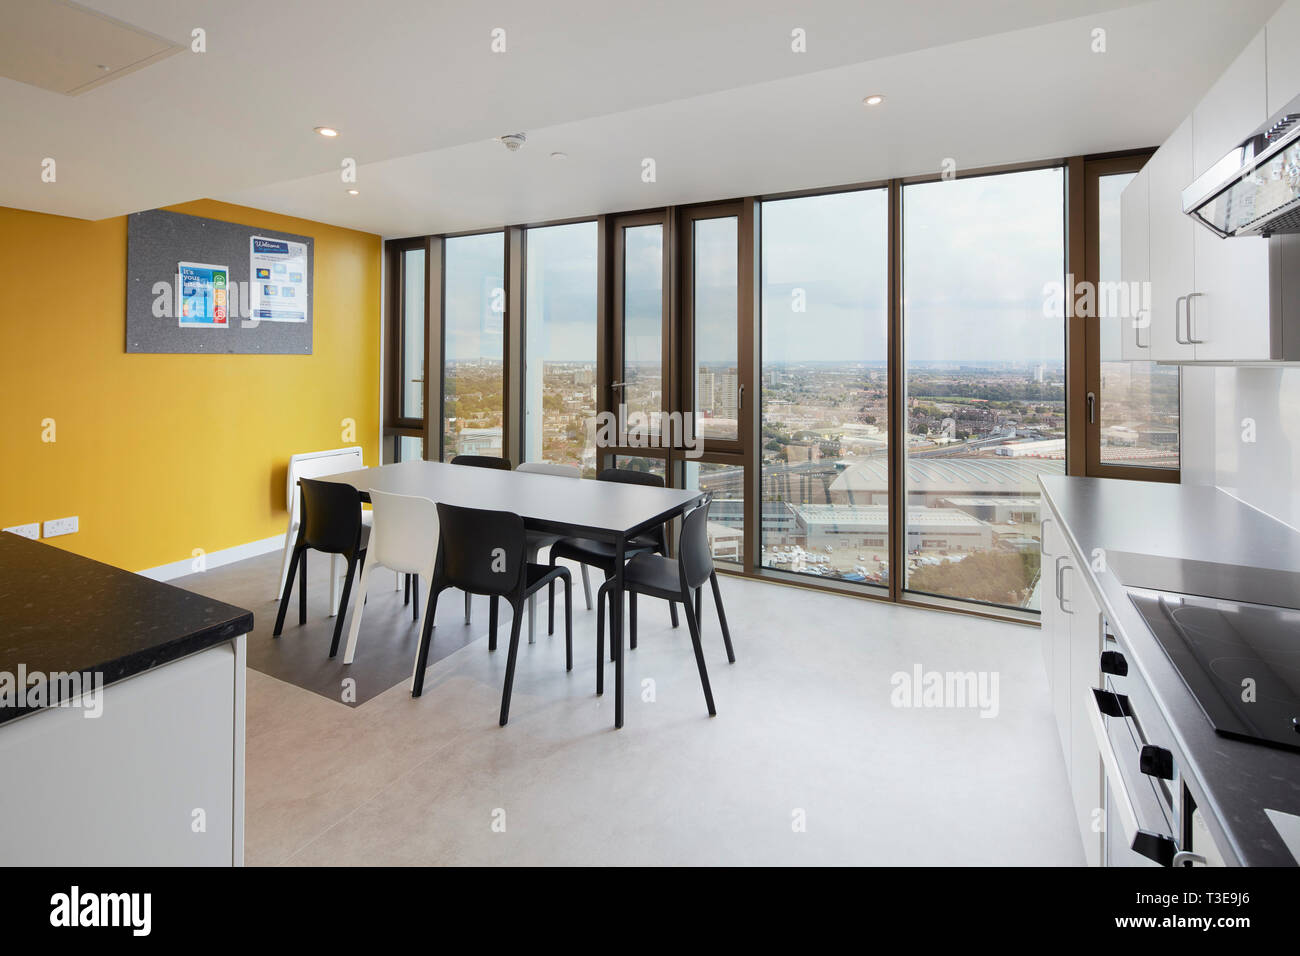 Kitchen With View Of East London. Stratford Tower, London, United Kingdom.  Architect: MJP Architects, 2018.